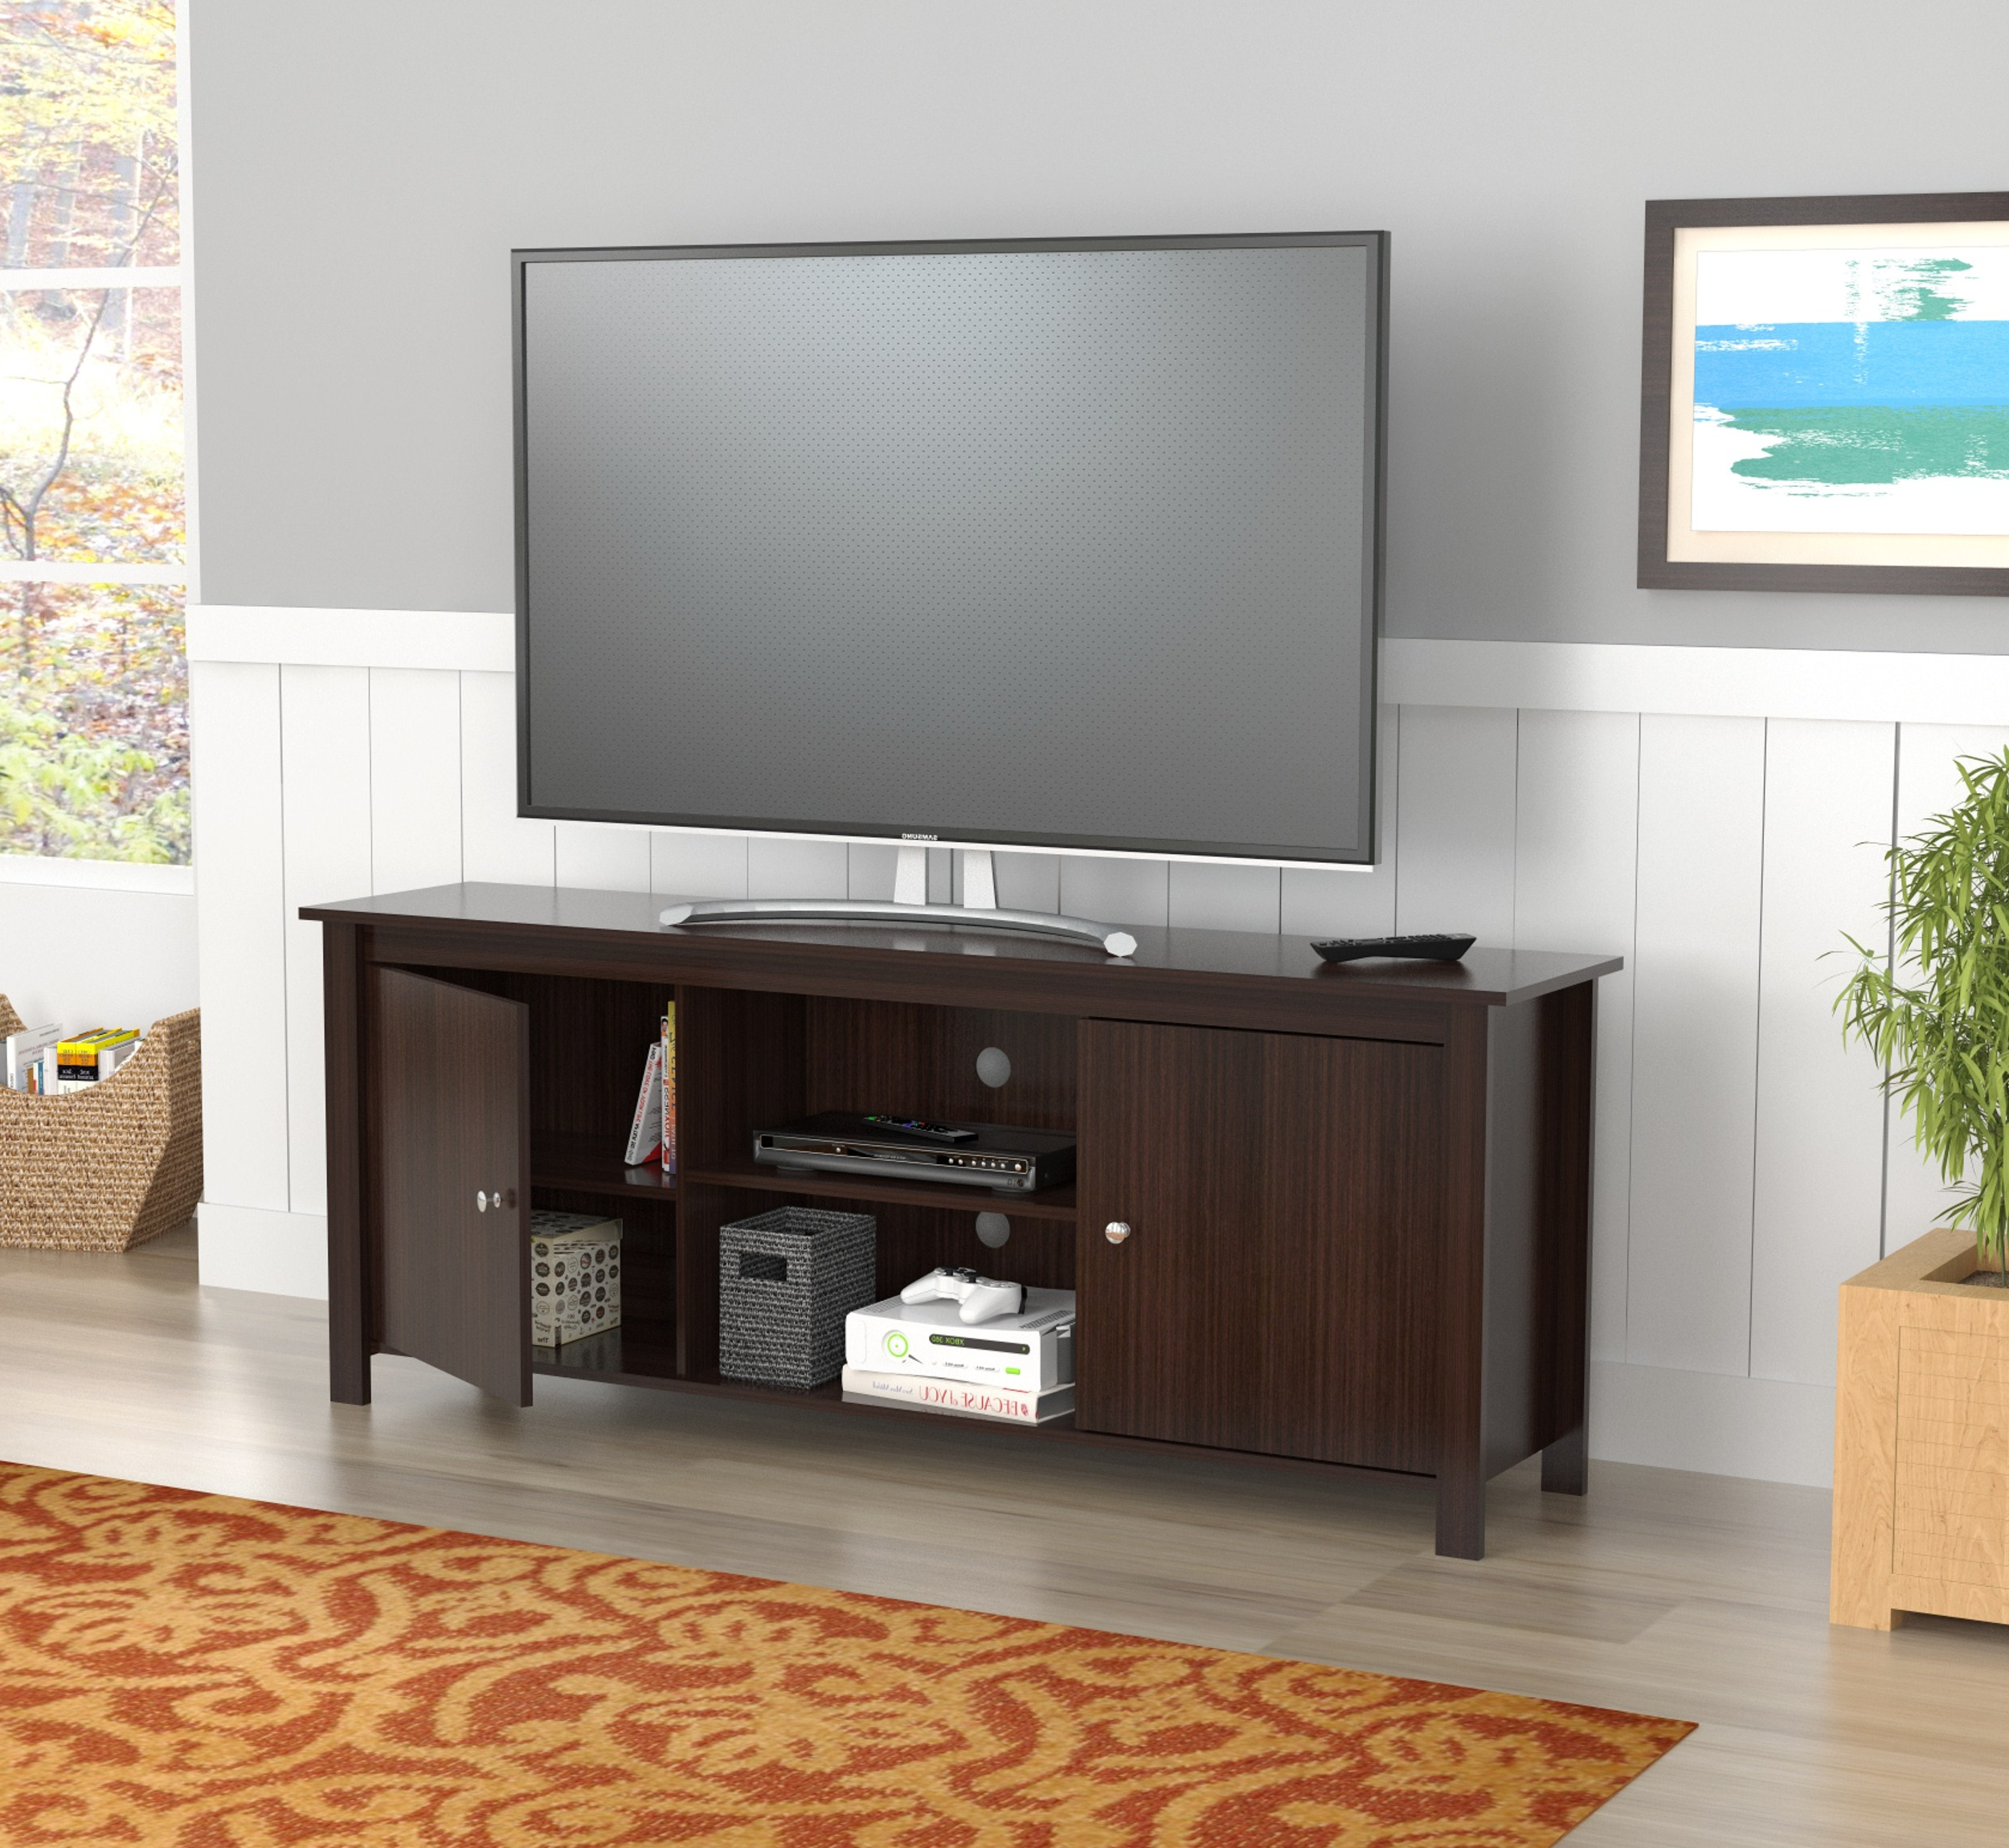 """Herington Tv Stands For Tvs Up To 60"""" Regarding Favorite Inval Contemporary Espresso 60 Inch Tv Stand – Walmart (View 10 of 20)"""